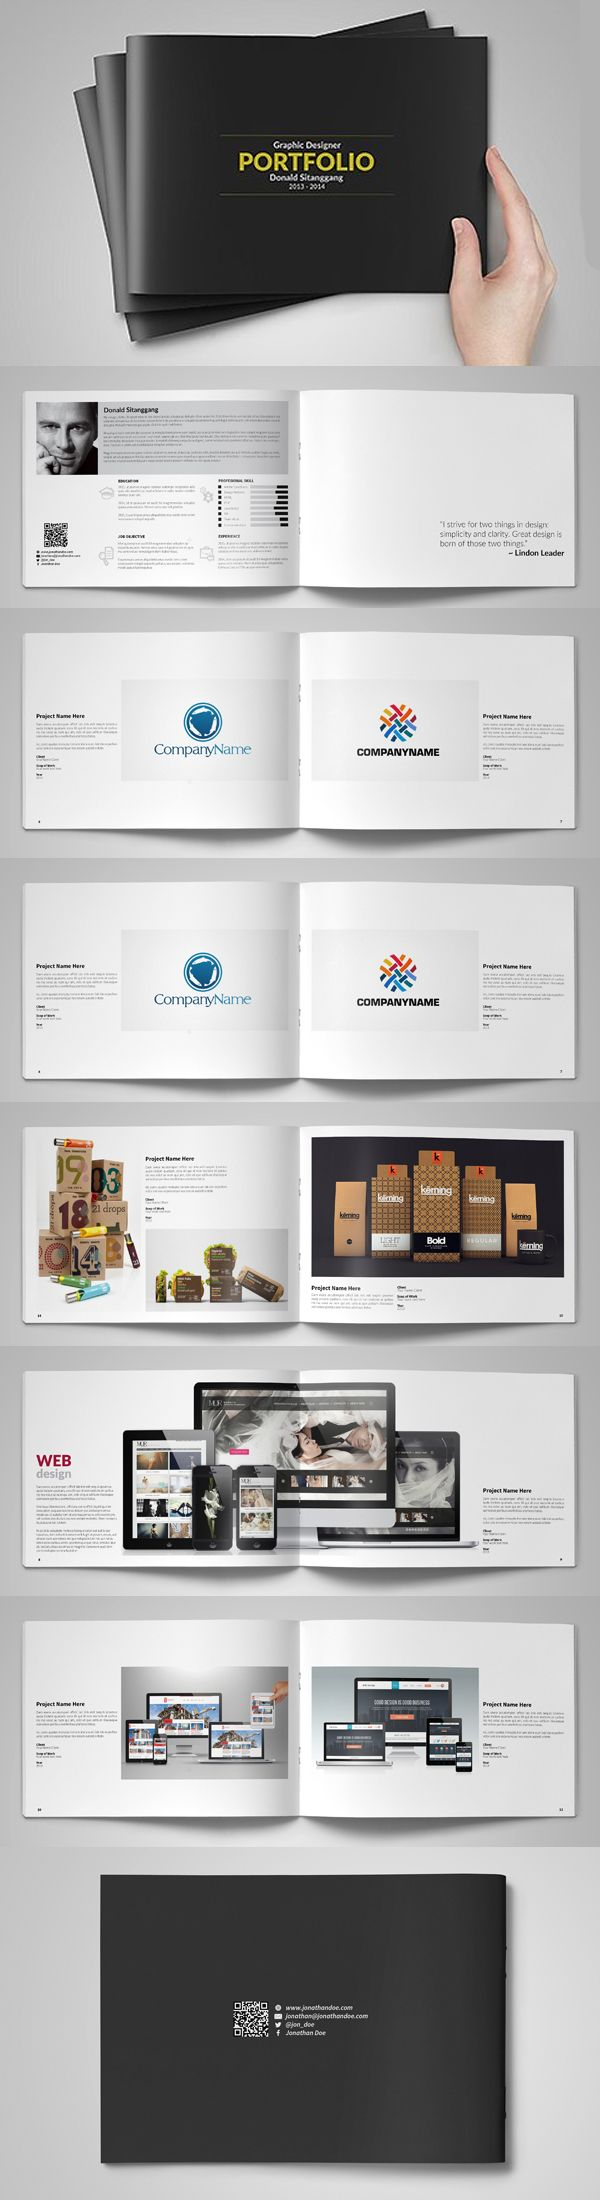 27 best ✏ Magazine Templates images on Pinterest | Editorial design ...